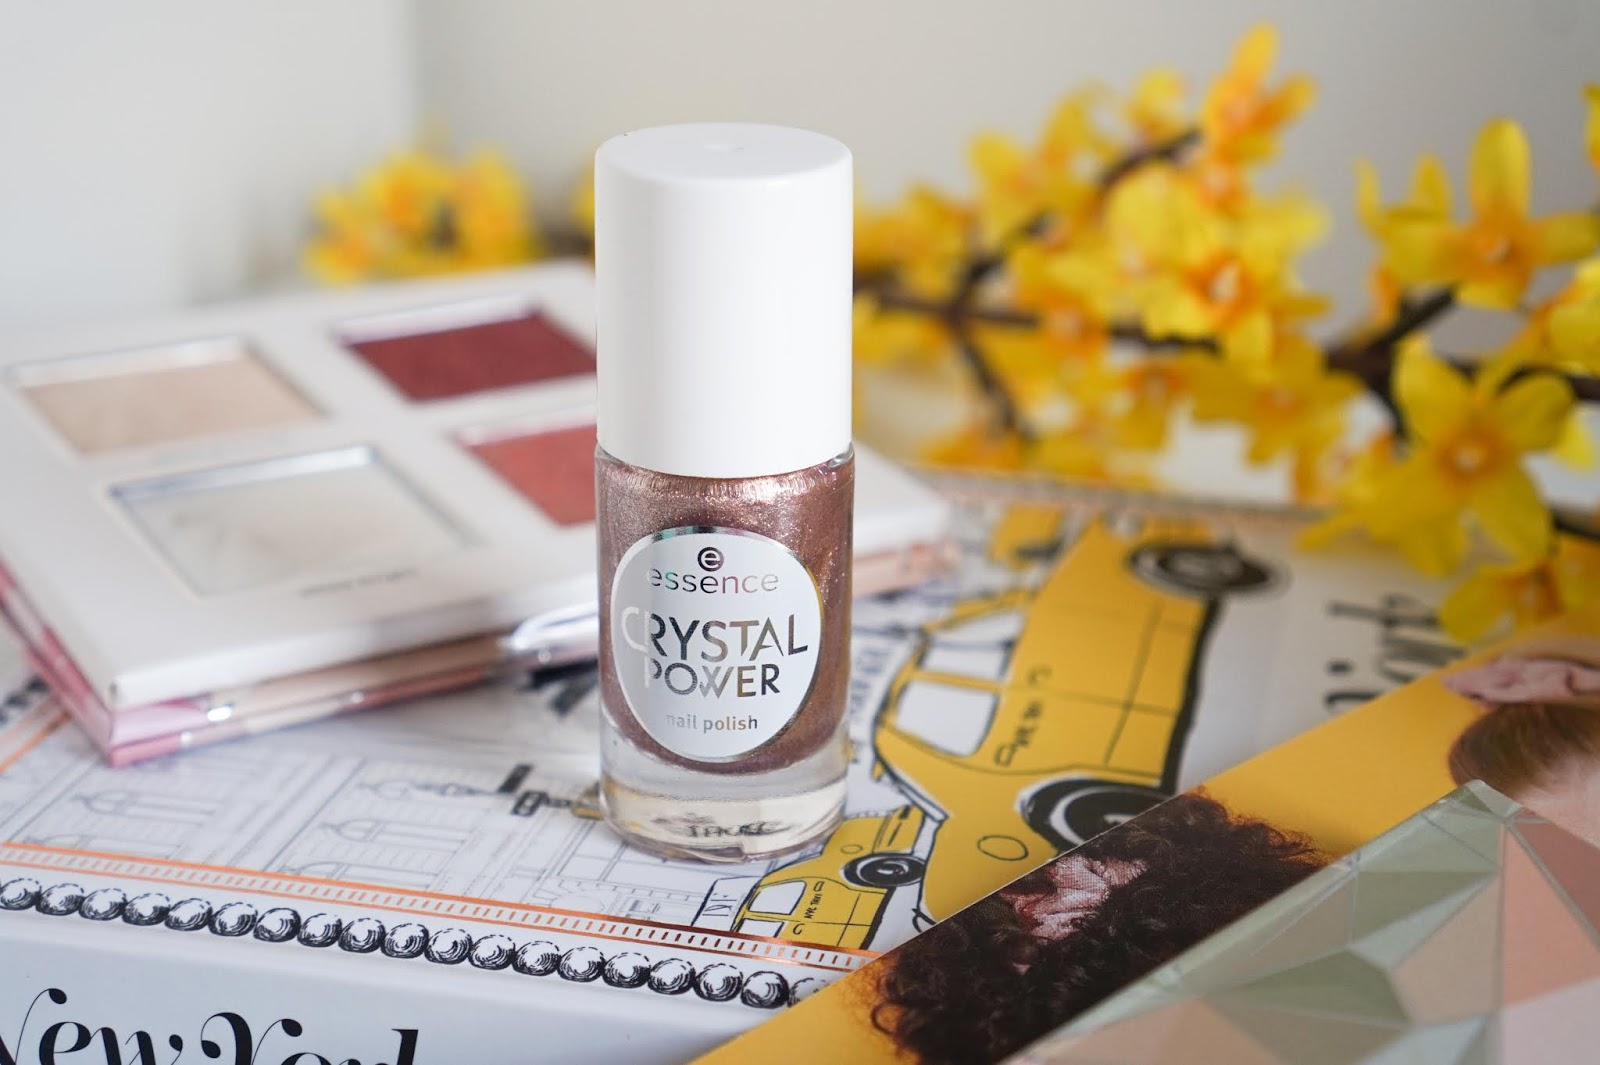 Essence_Crystal_Power_Nail_Polish